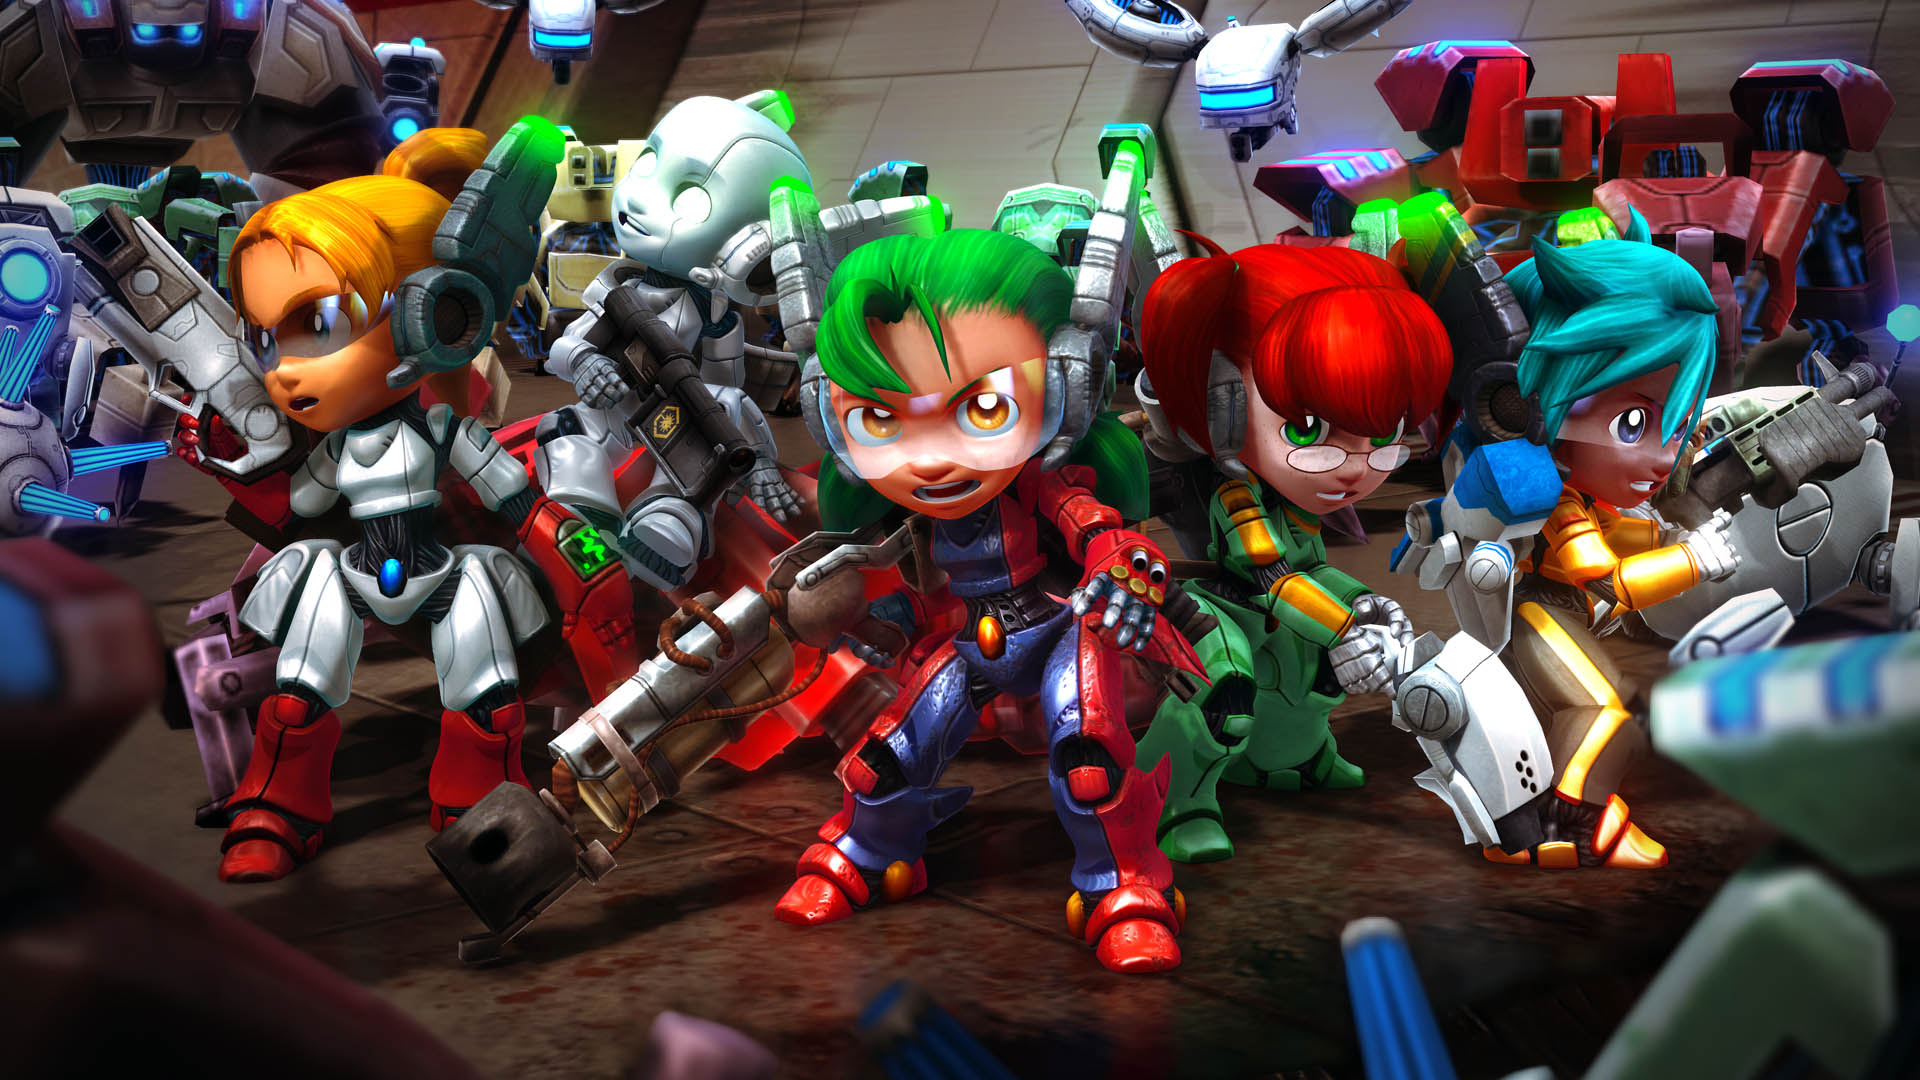 Assault Android Cactus Energizes the Xbox One X soon! @AndroidCactus